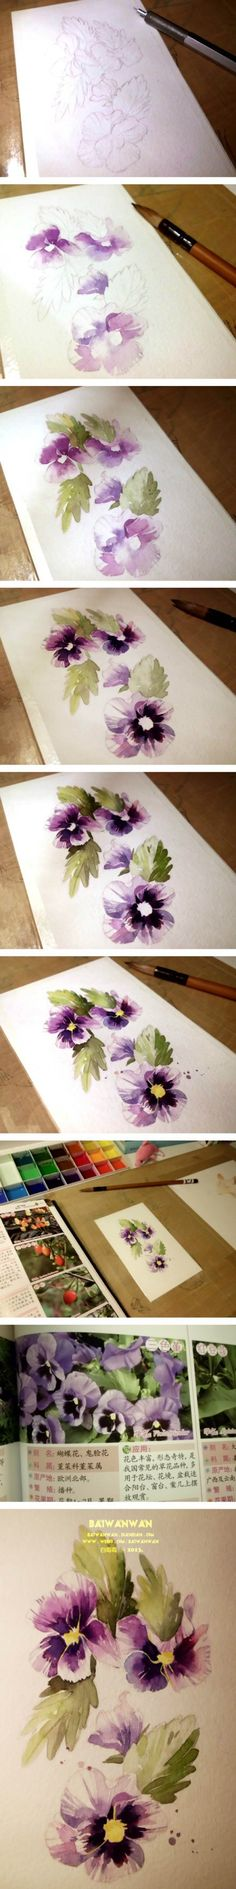 watercolor art evolution